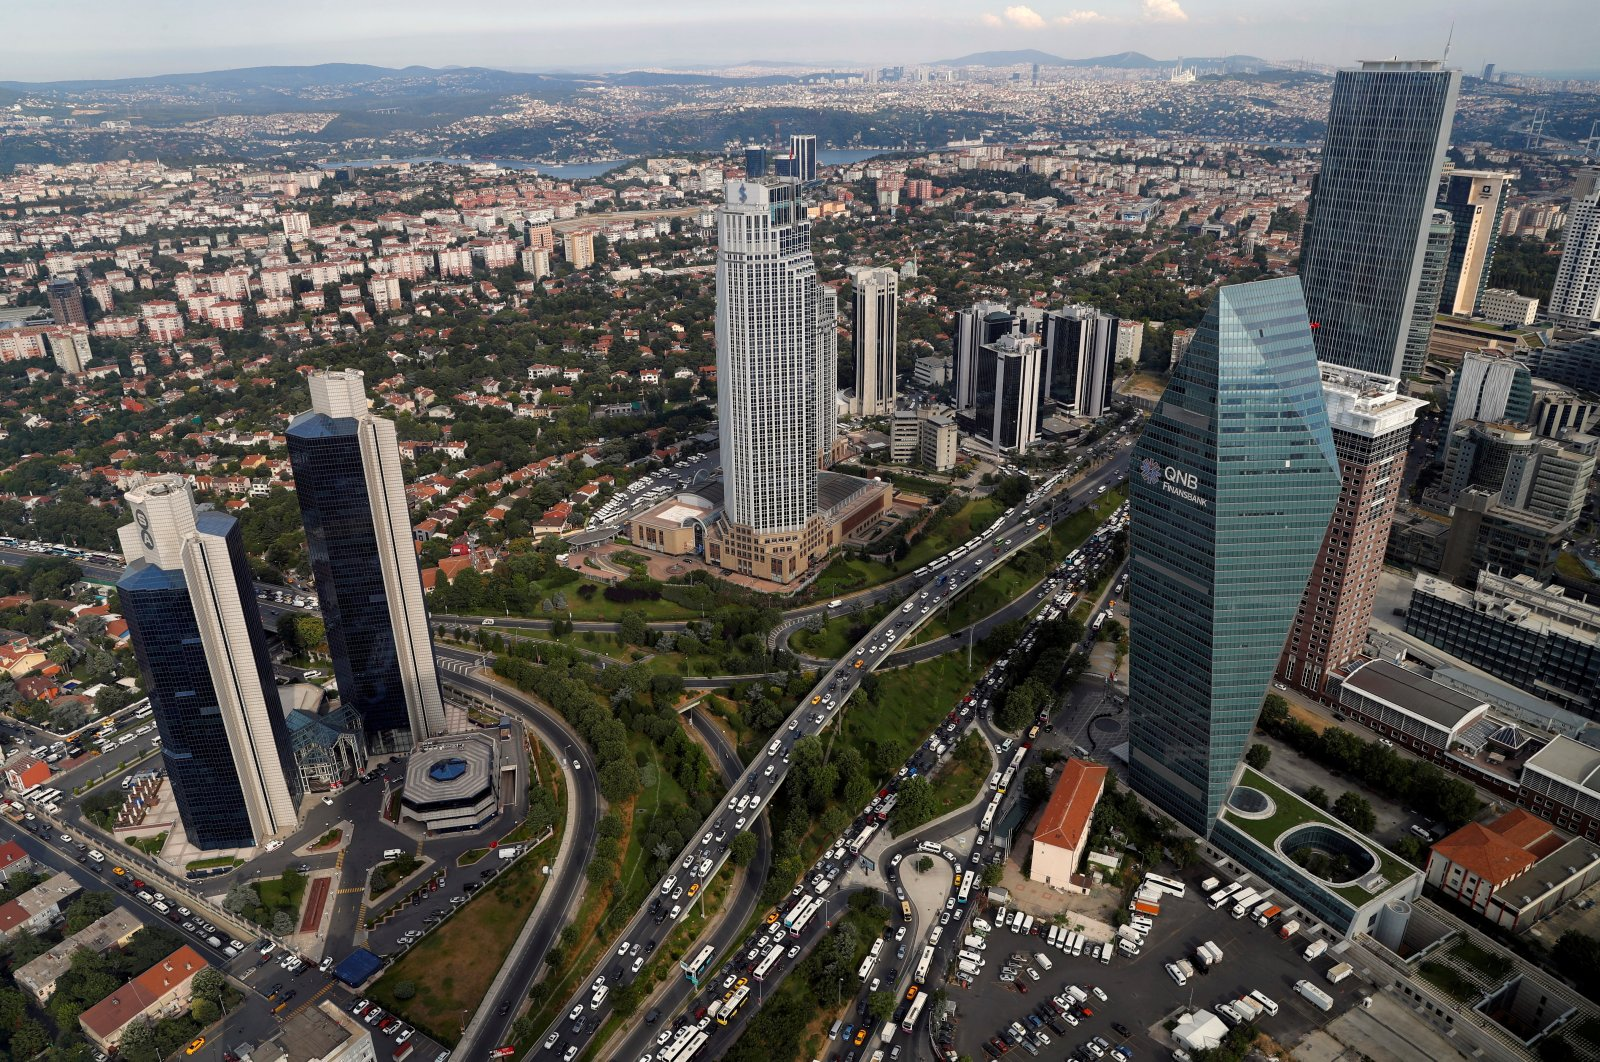 The business and financial district of Levent, which is comprised of bank headquarters and popular shopping malls, is pictured in Istanbul, Turkey, July 9, 2019. (Reuters Photo)